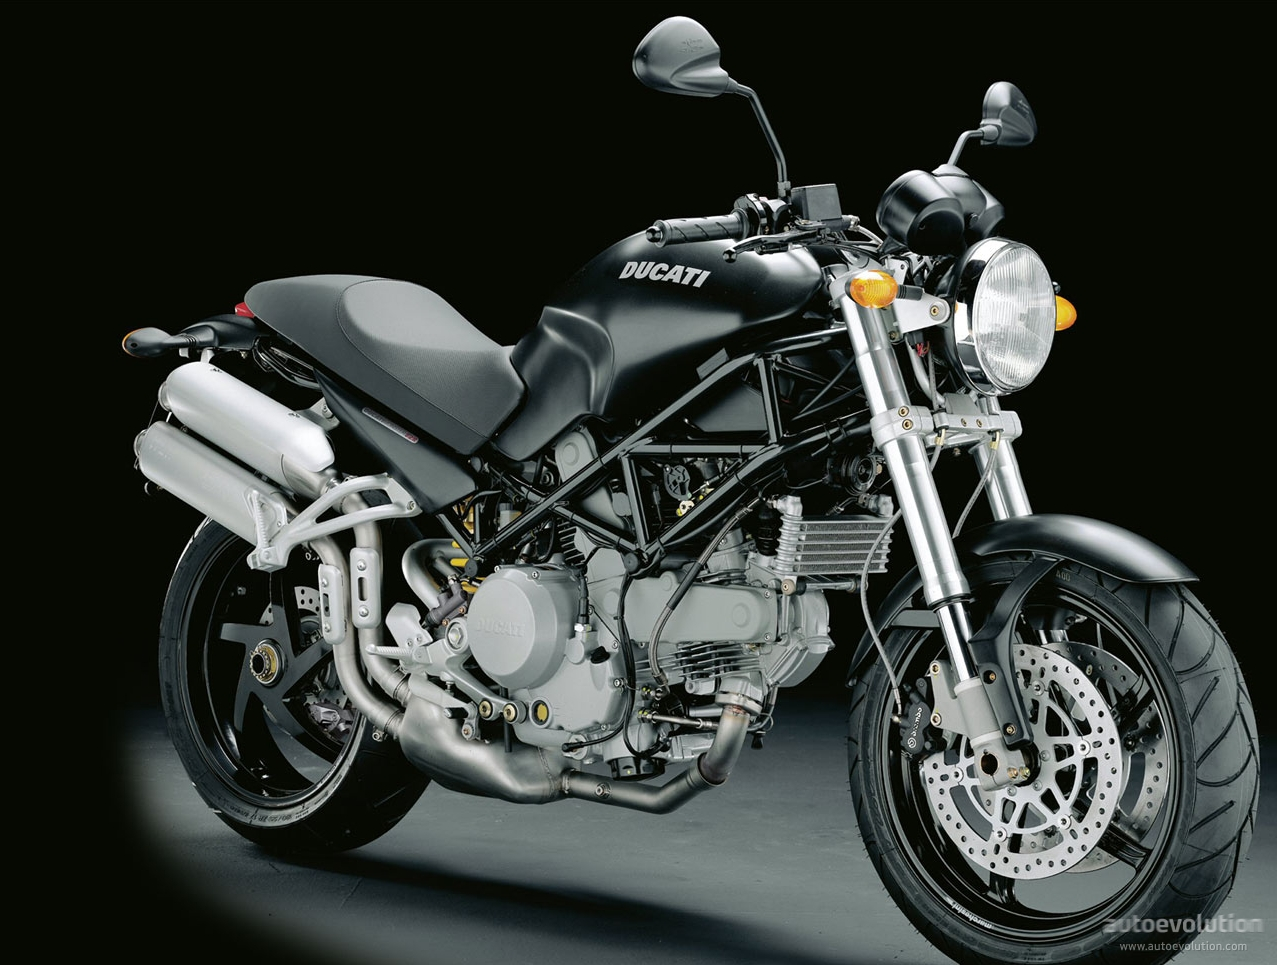 2008 ducati monster s2r 1000 moto zombdrive com. Black Bedroom Furniture Sets. Home Design Ideas